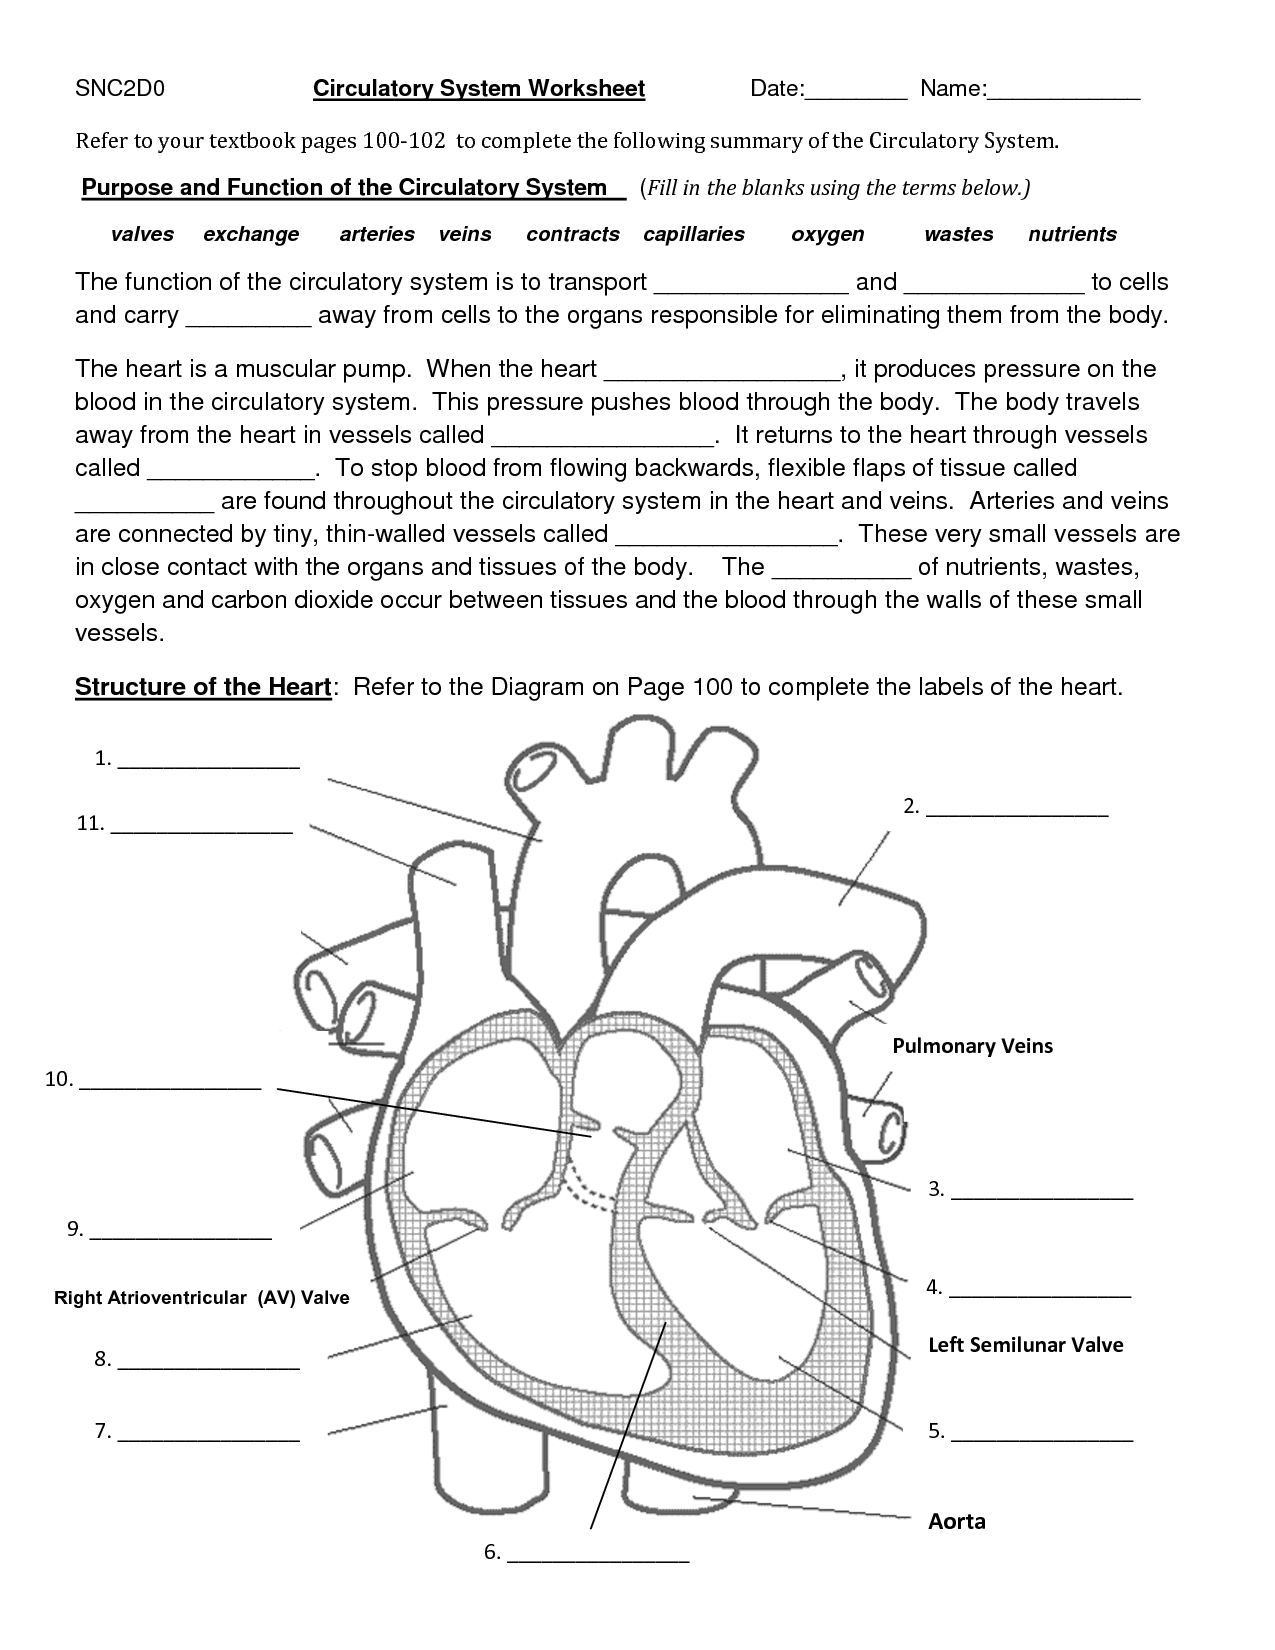 Worksheets Circulatory System Worksheet circulatory system diagram worksheet 2 anatomy worksheet